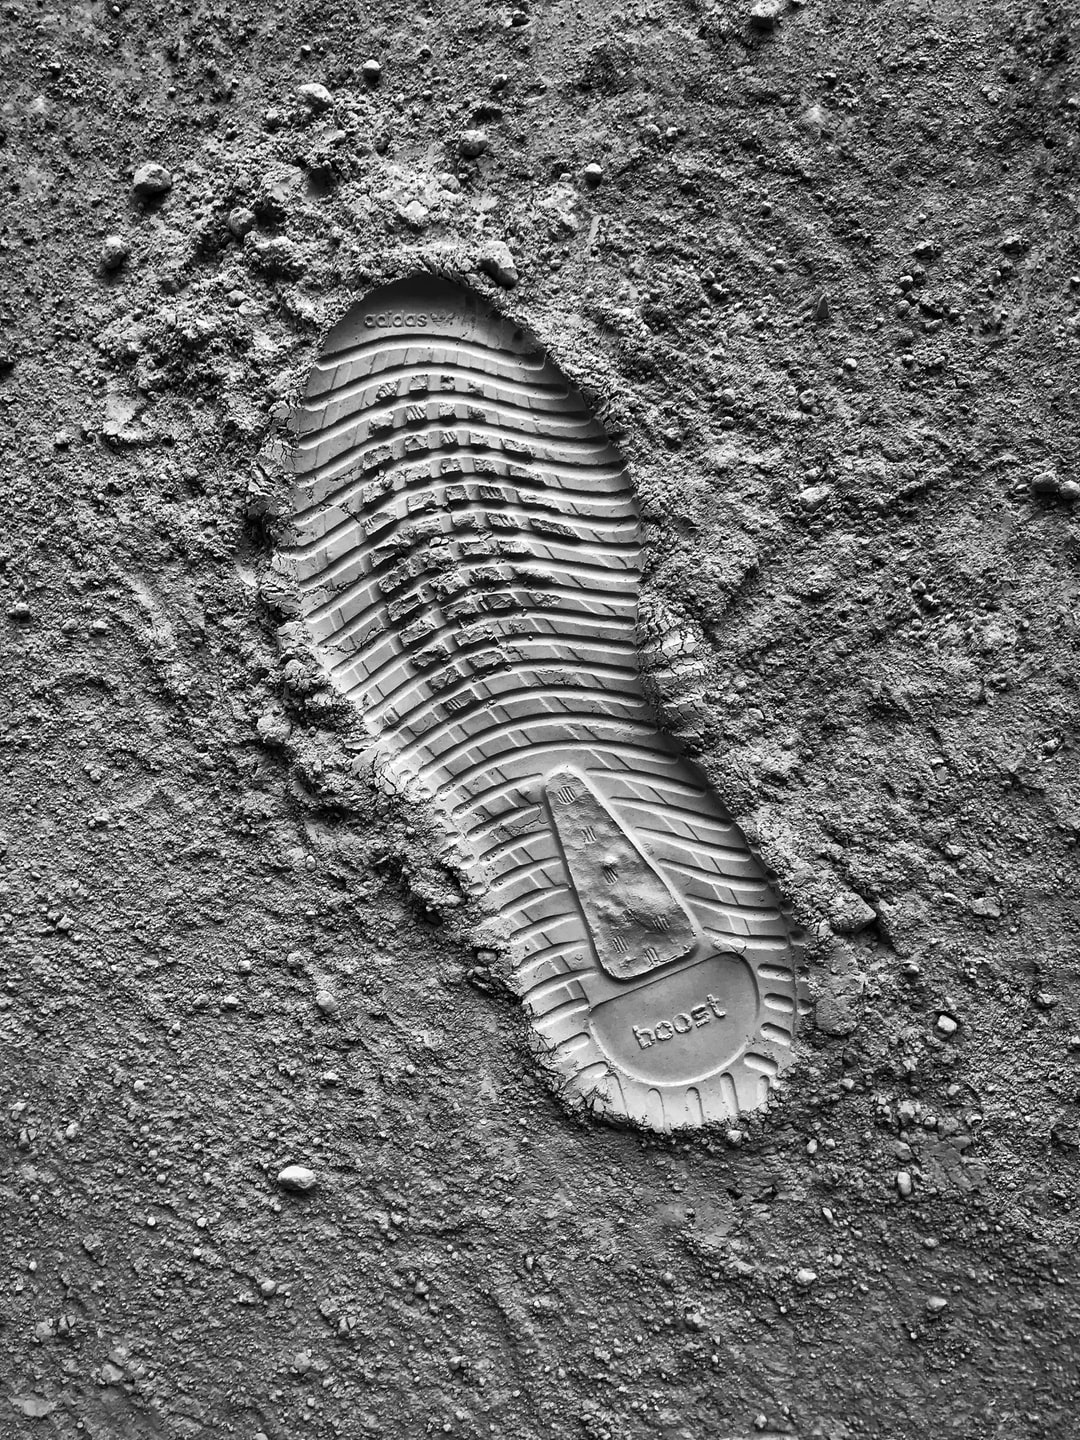 """My dads a civil engineer. He was inspecting a client's house one day and wondering around I eventually looked down at the ground after thinking it was really soft for some reason. There was a imprint from my Yeezy's sole and thought """"Damn, this is cool, it sort of looks like the boot from the first moon landing but futuristic"""" A bit of concrete, much stomping and a few shots later, I got this!"""